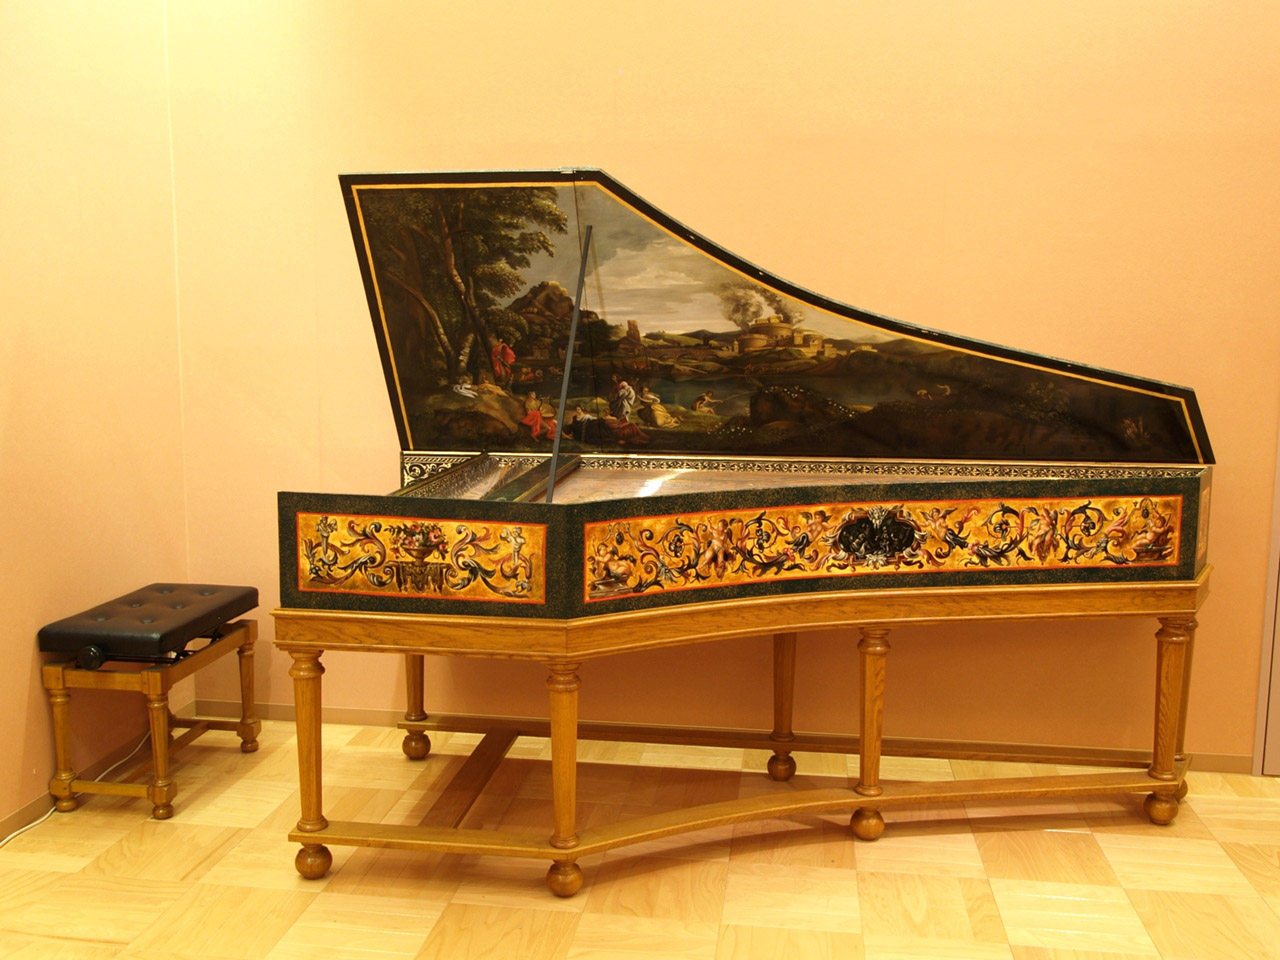 PIPARTE Harpsichords